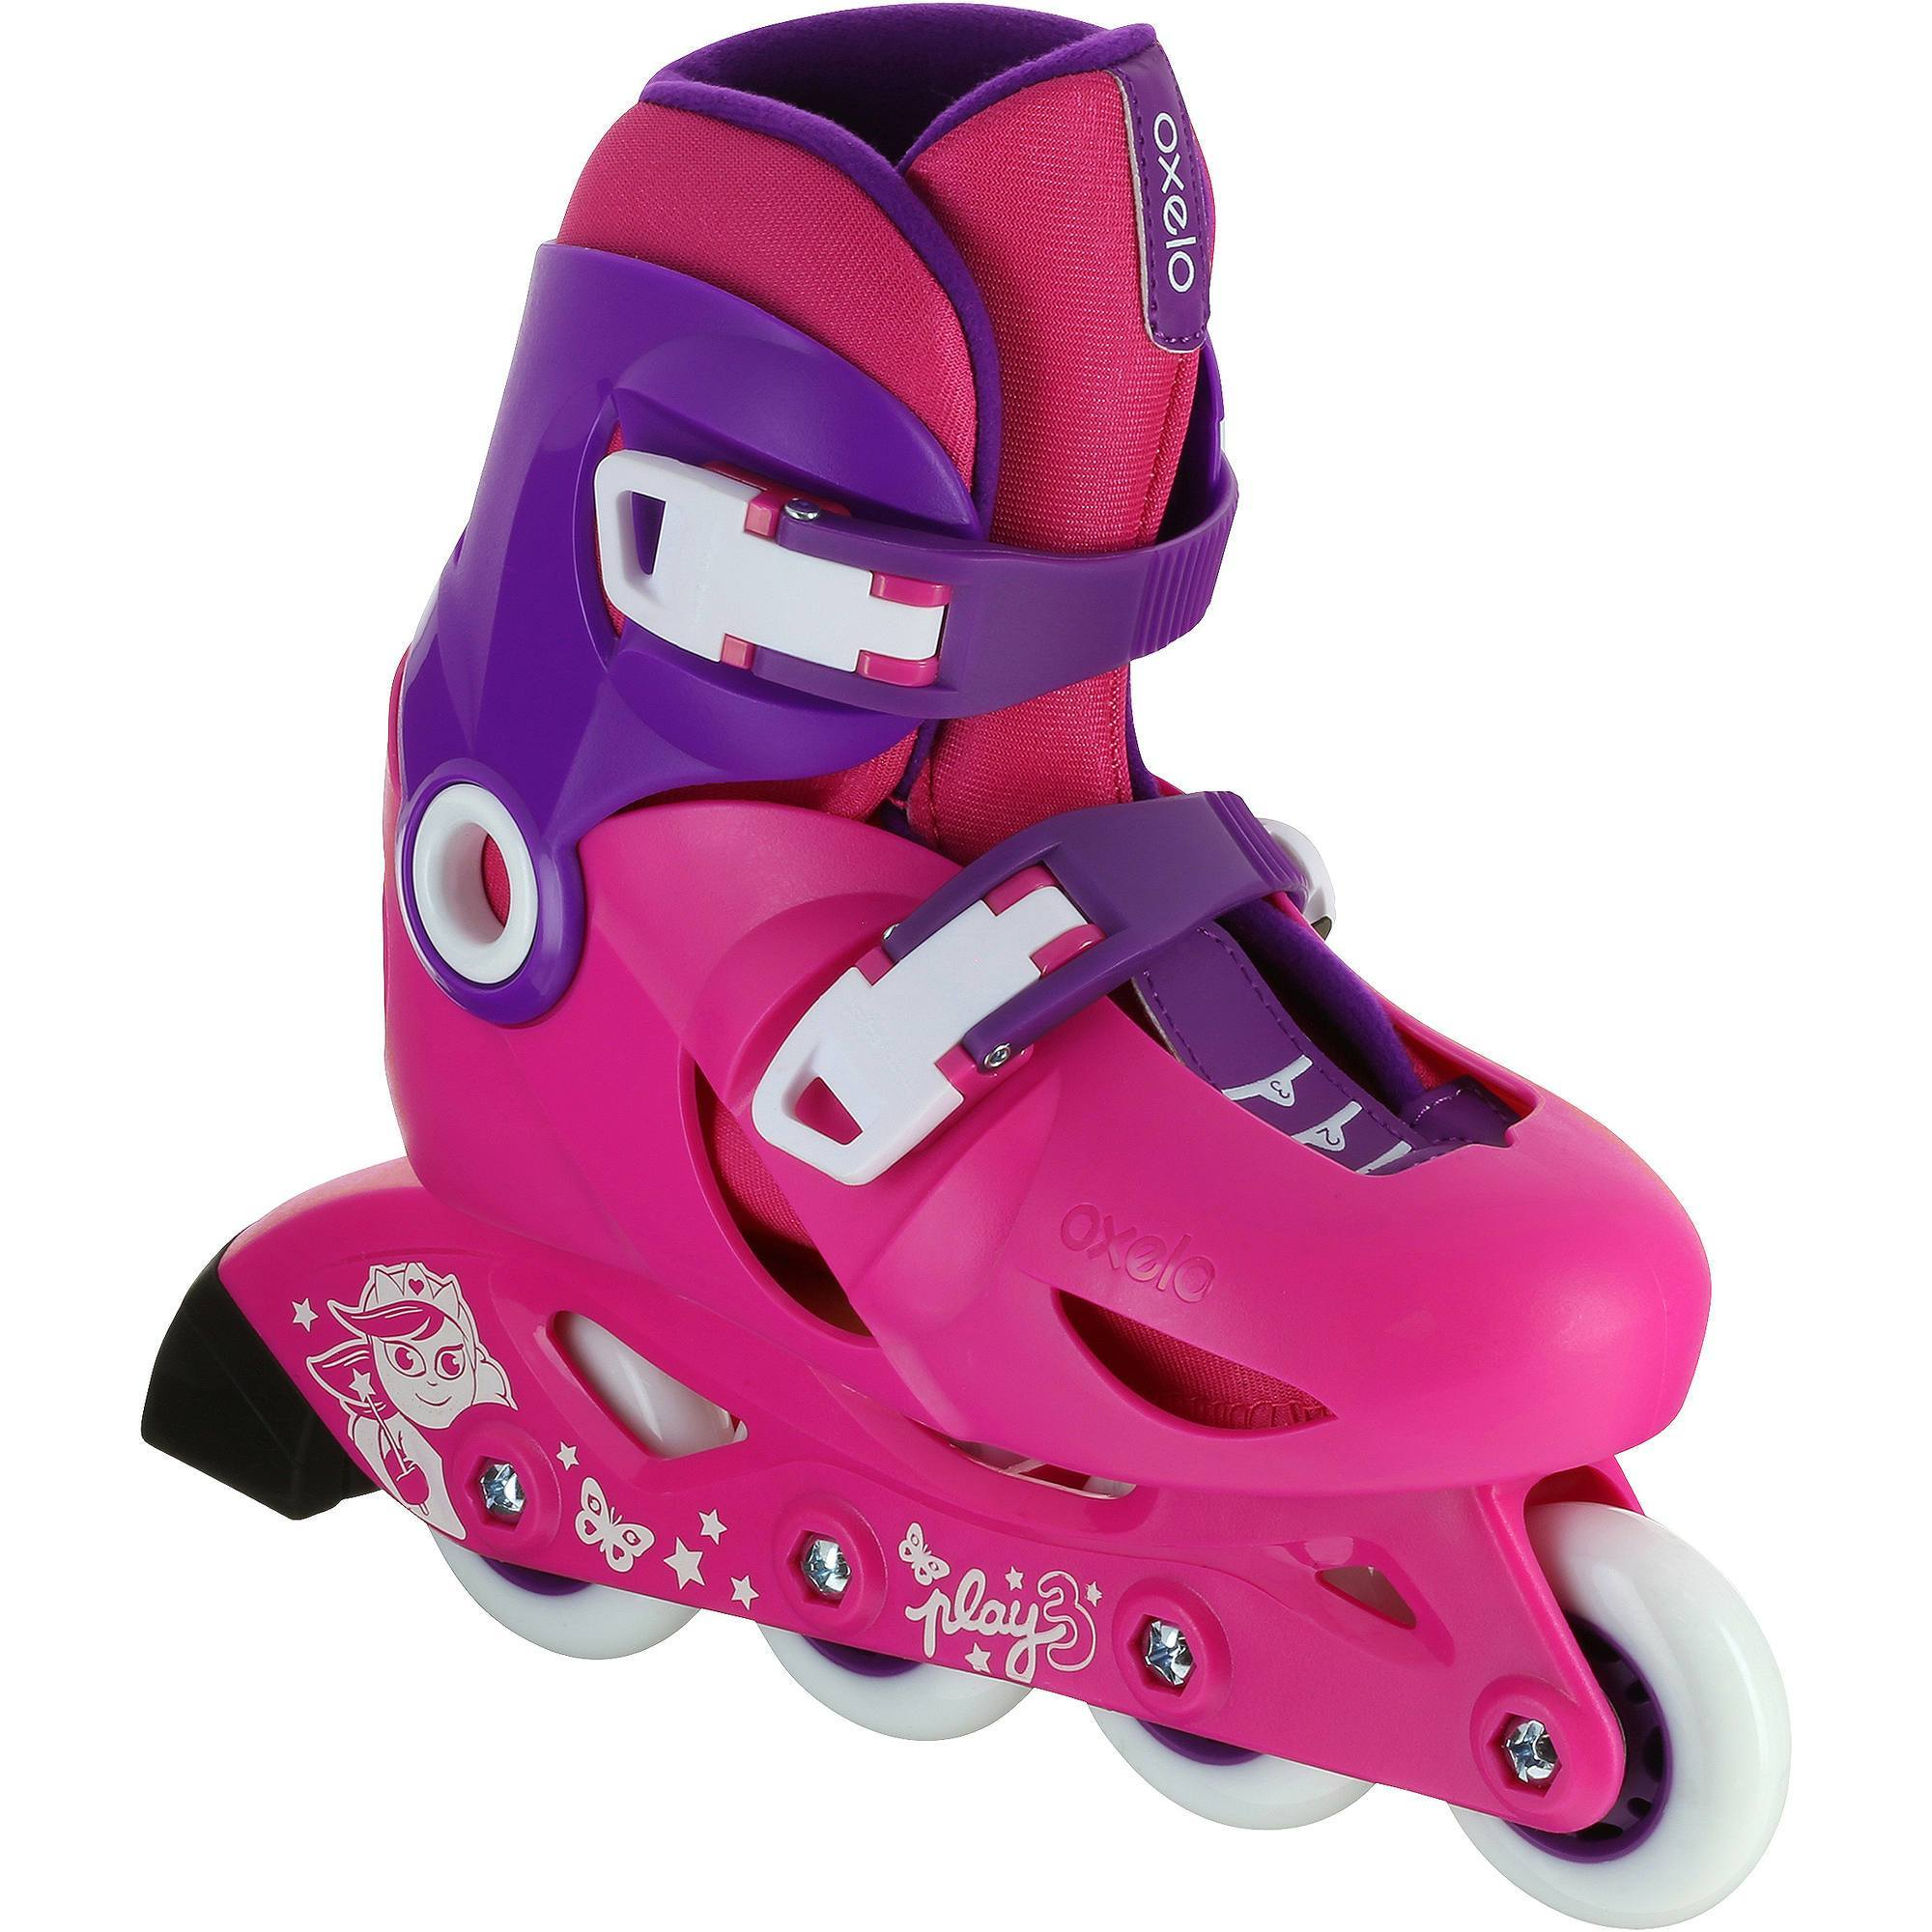 roller enfant PLAY 3 rose violet